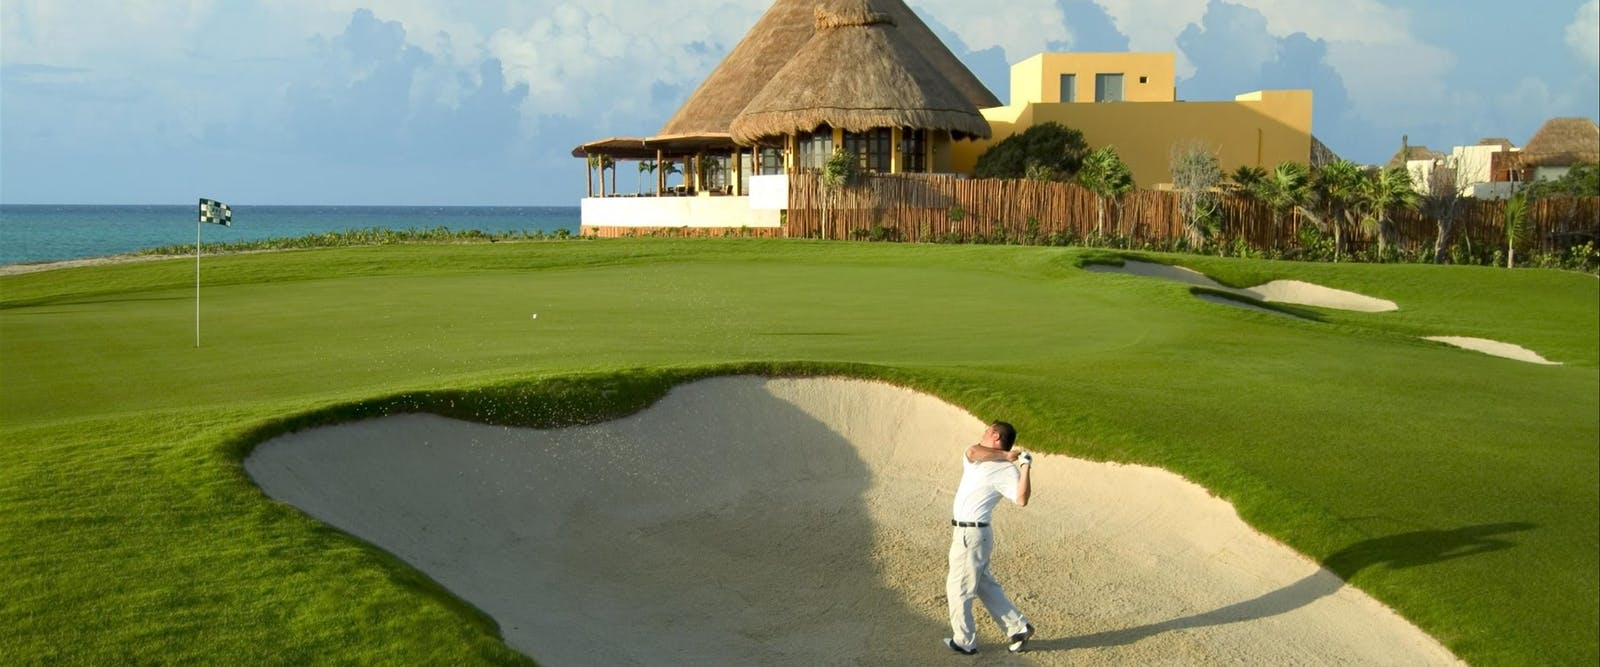 Golf Course at Fairmont Mayakoba, Riviera Maya, Mexico